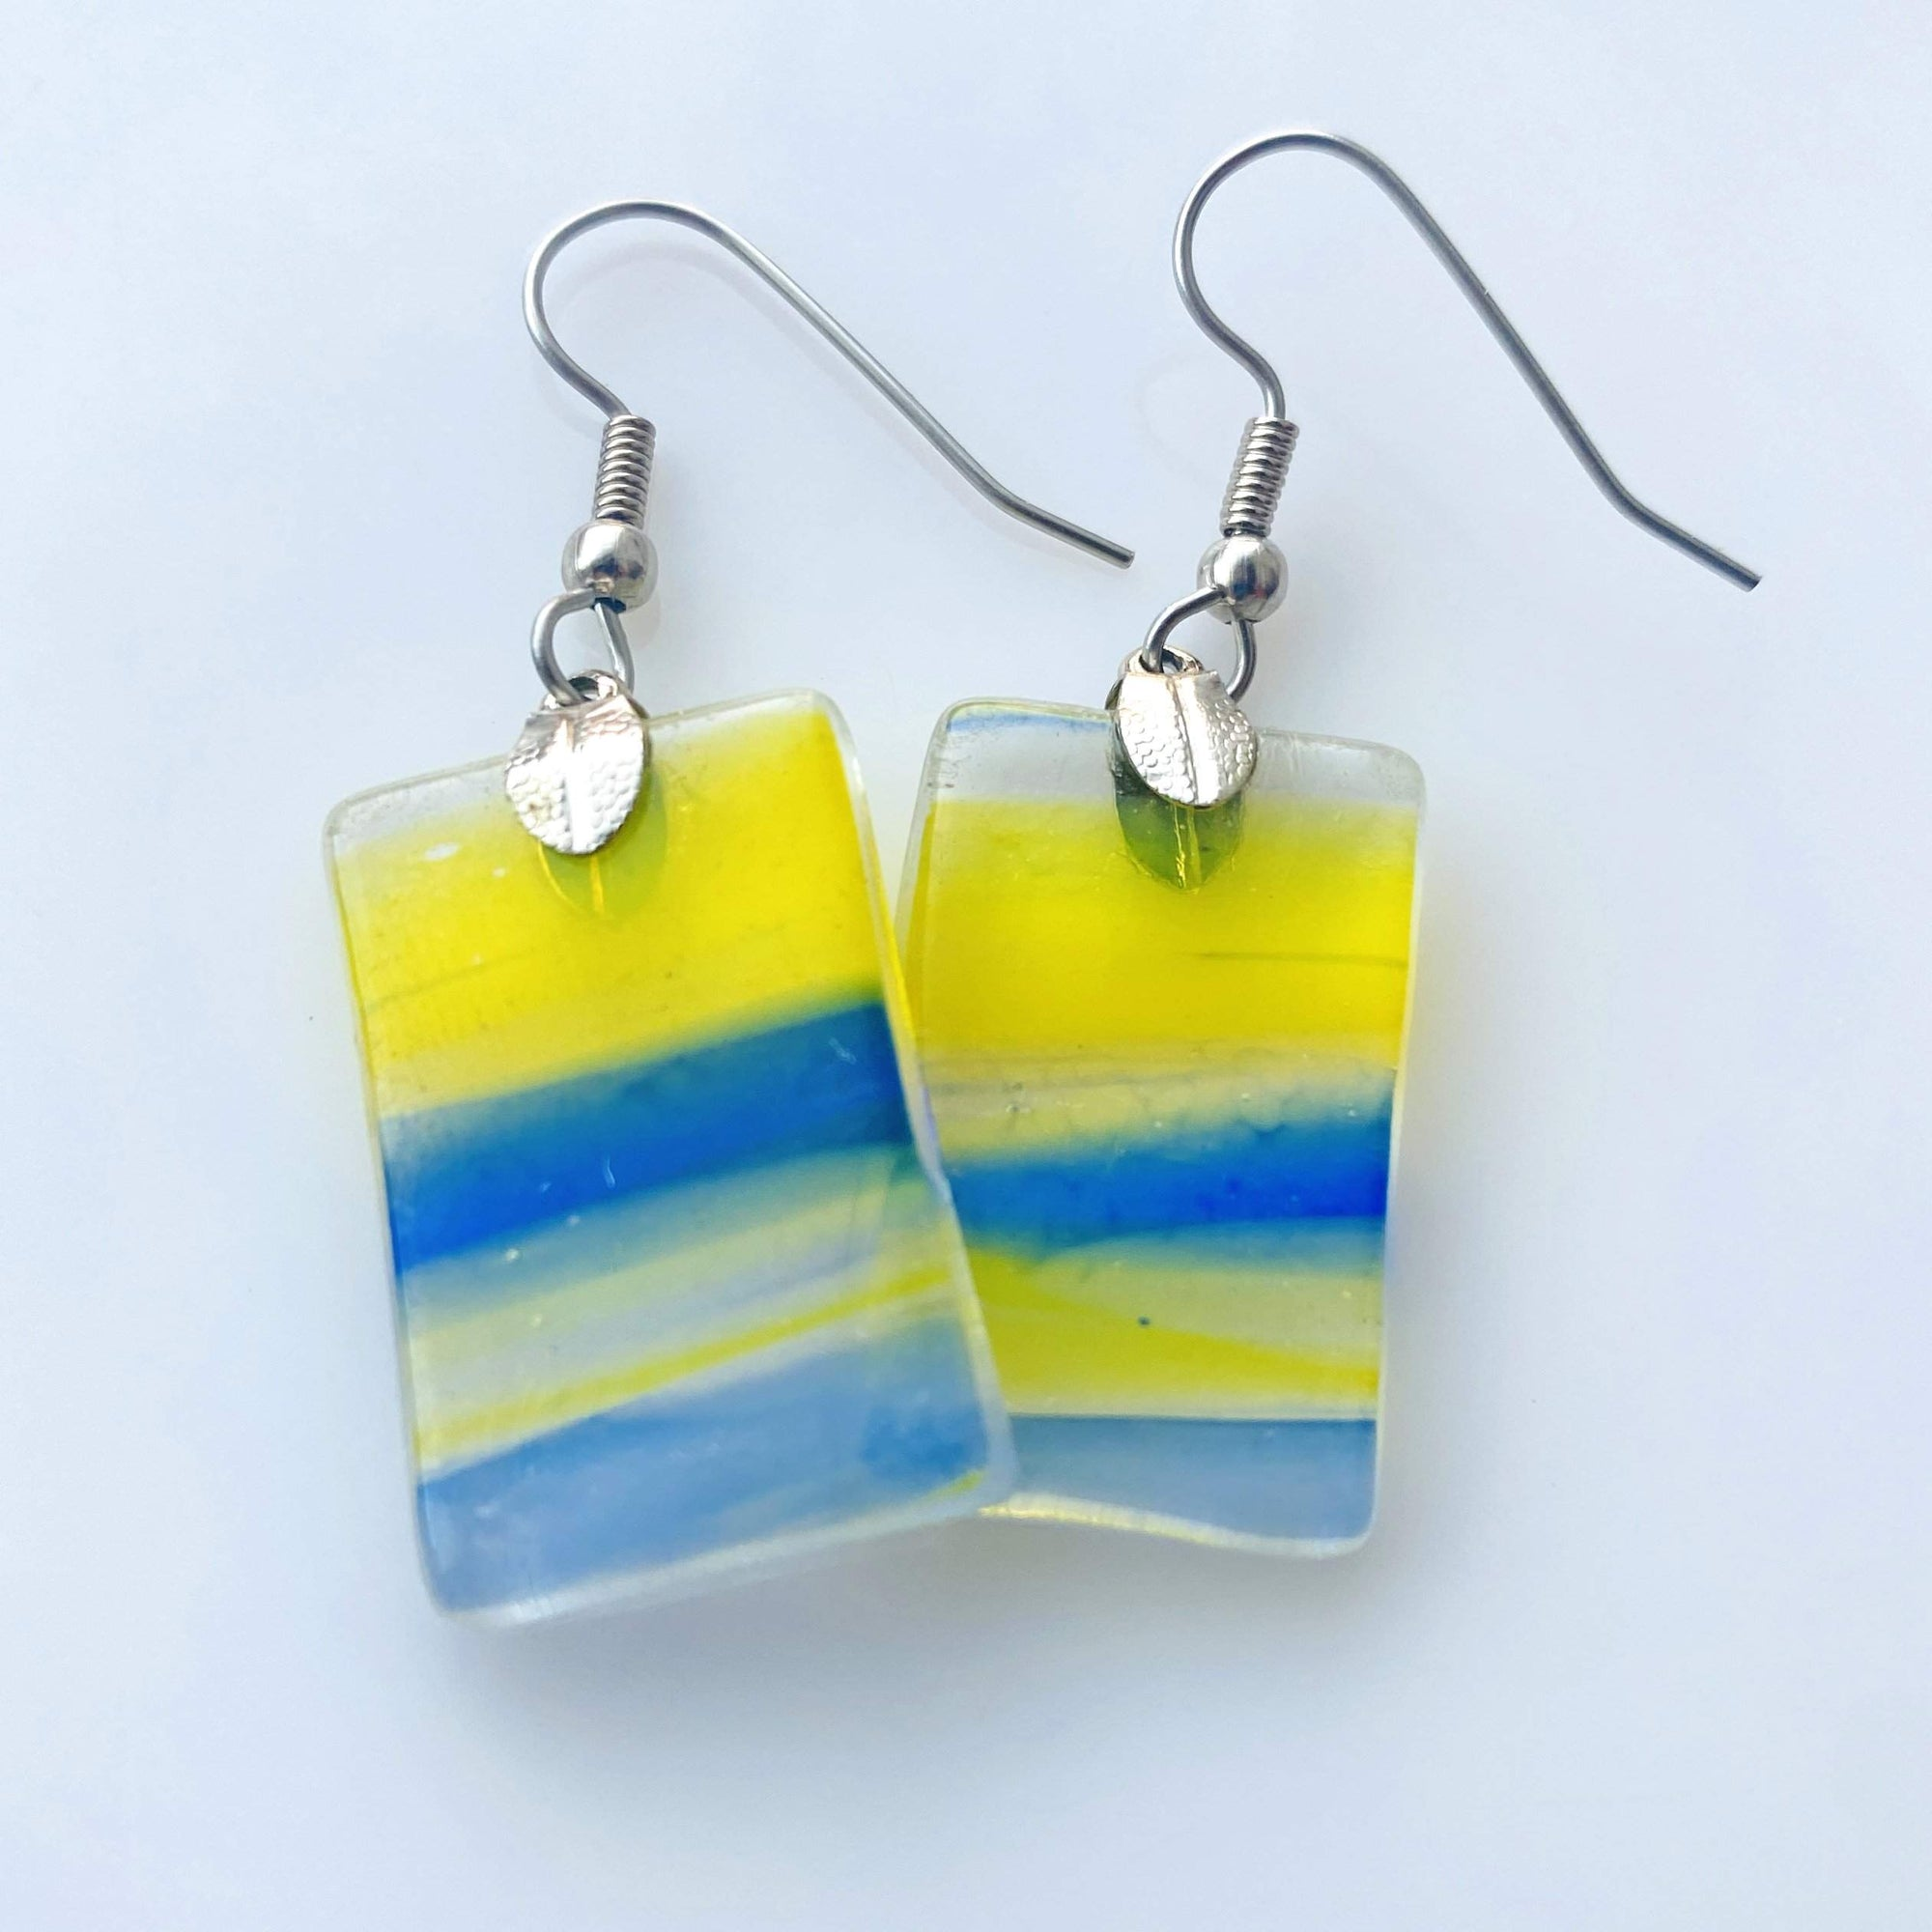 Upcycled Yellow and Blue Fused Glass Earrings